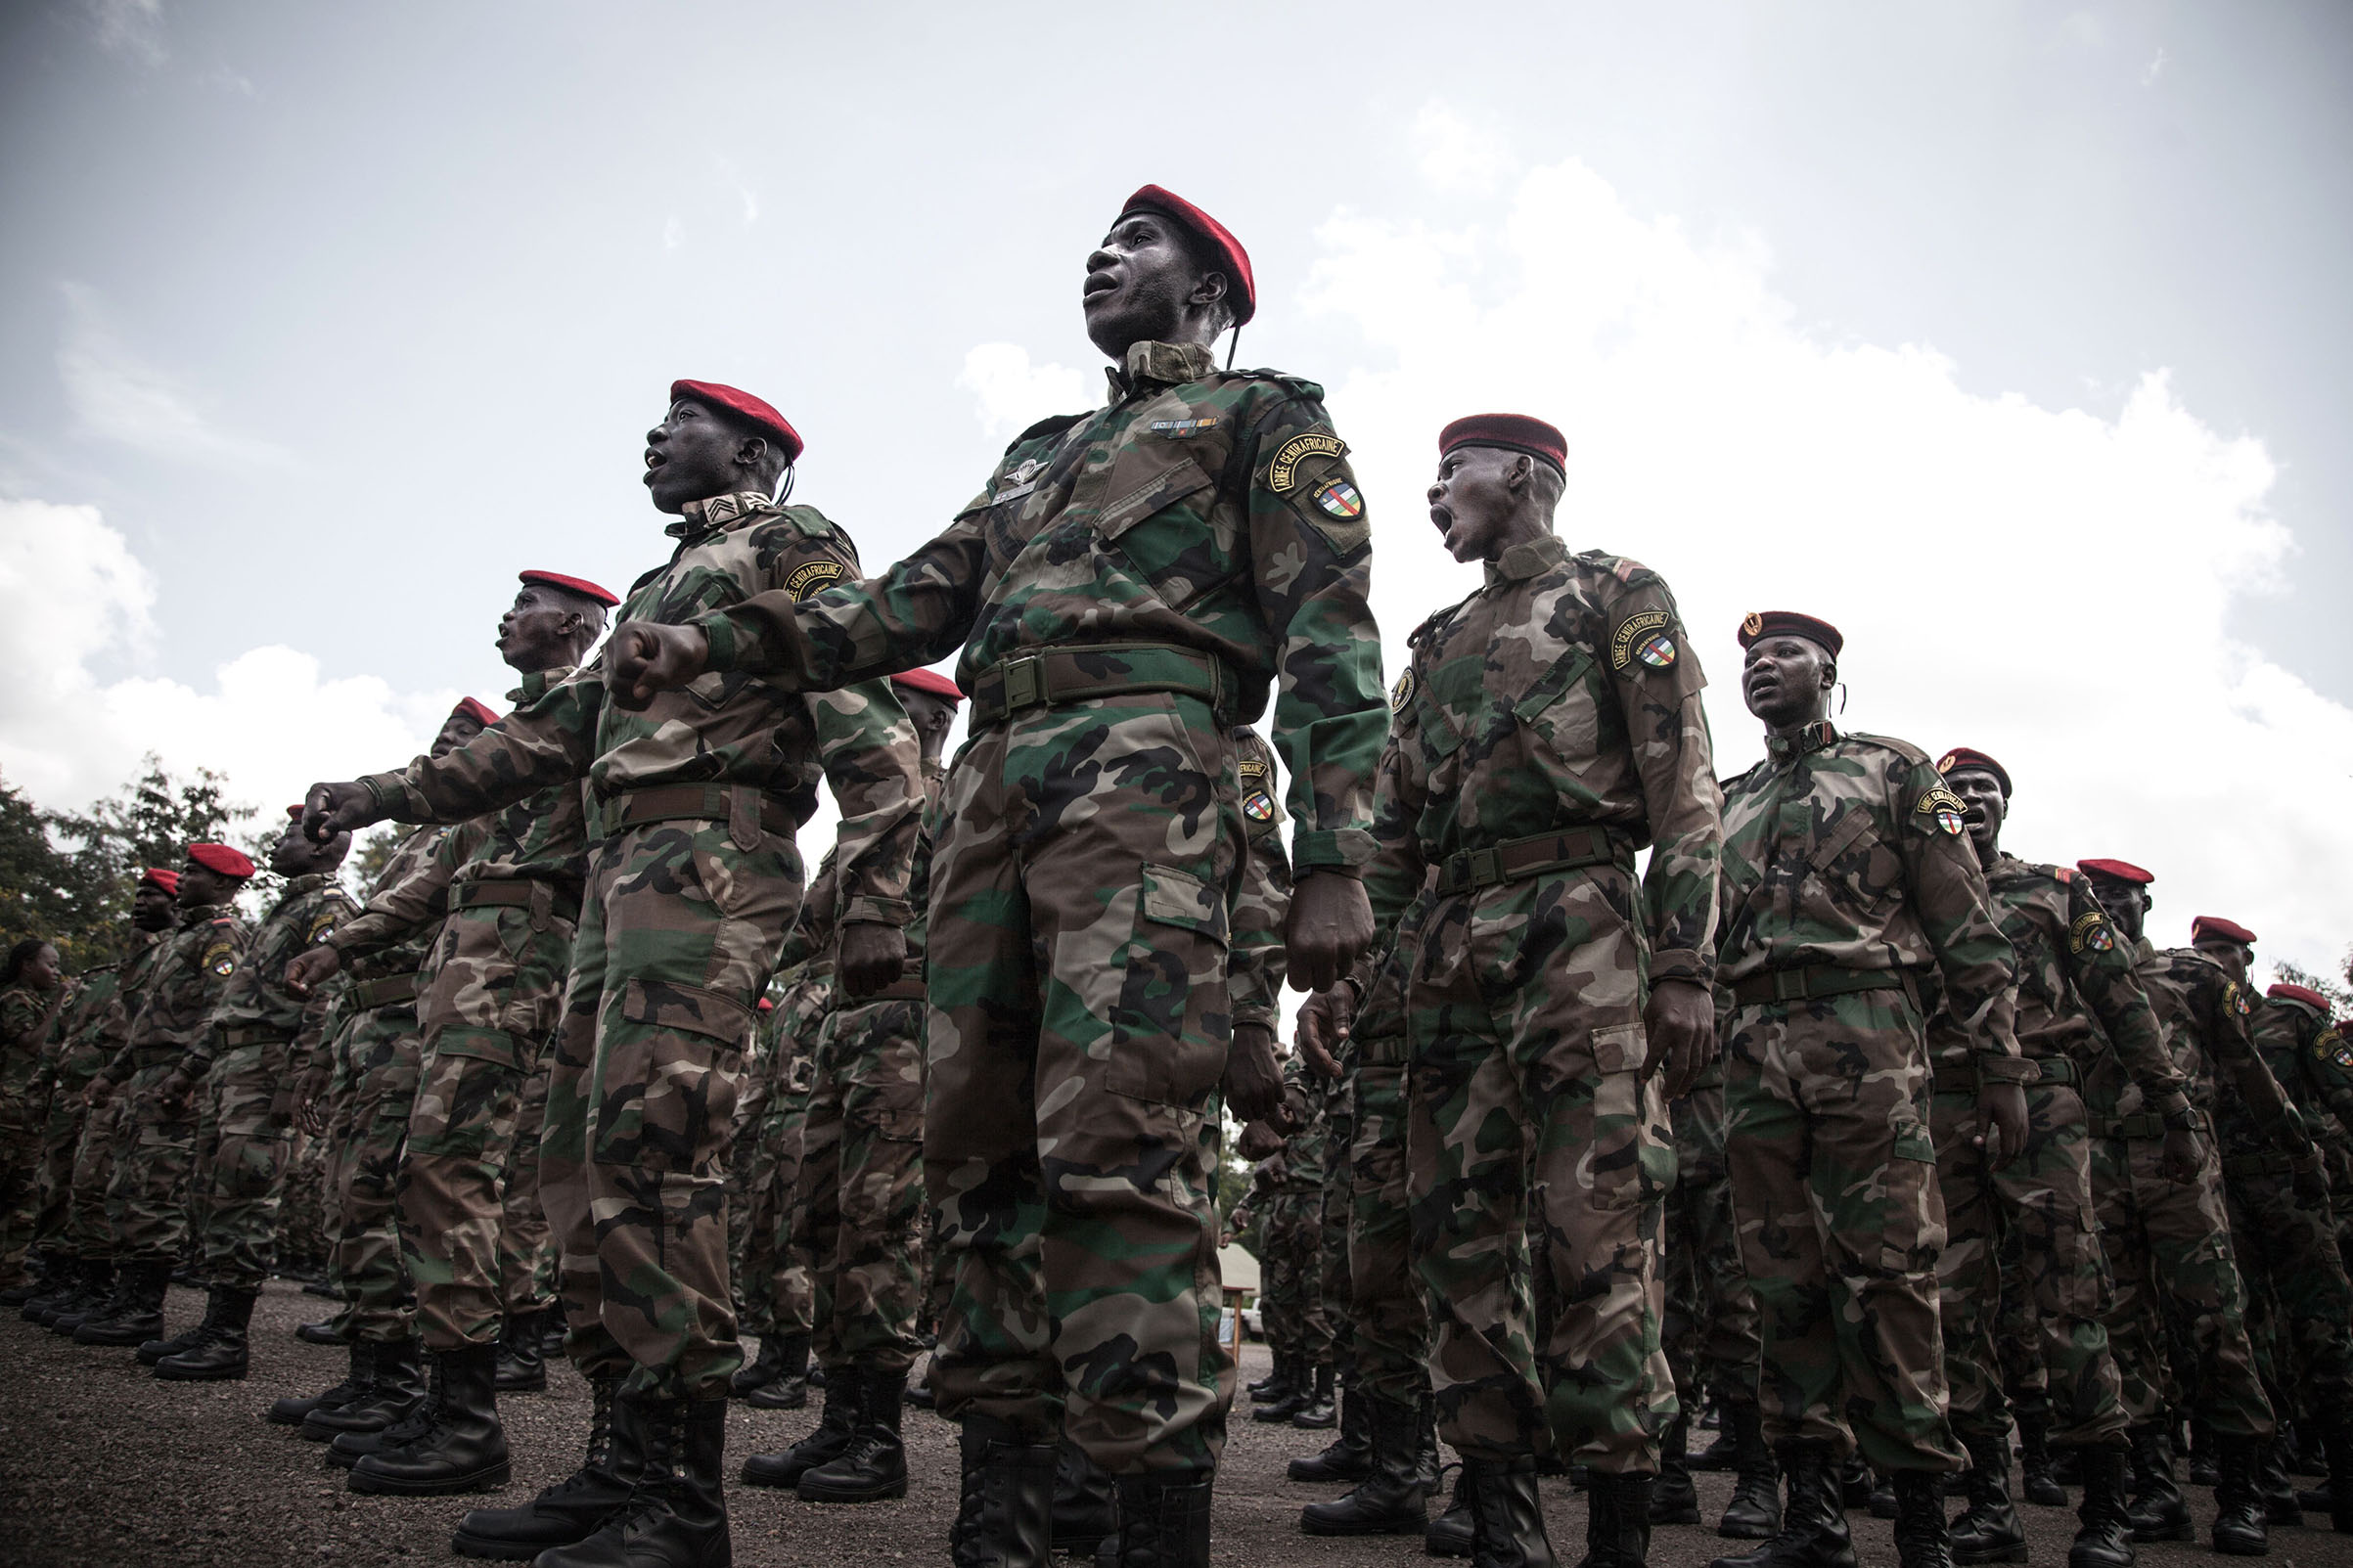 Russian consultants have trained Central African armed forces, seen here in August 2018.